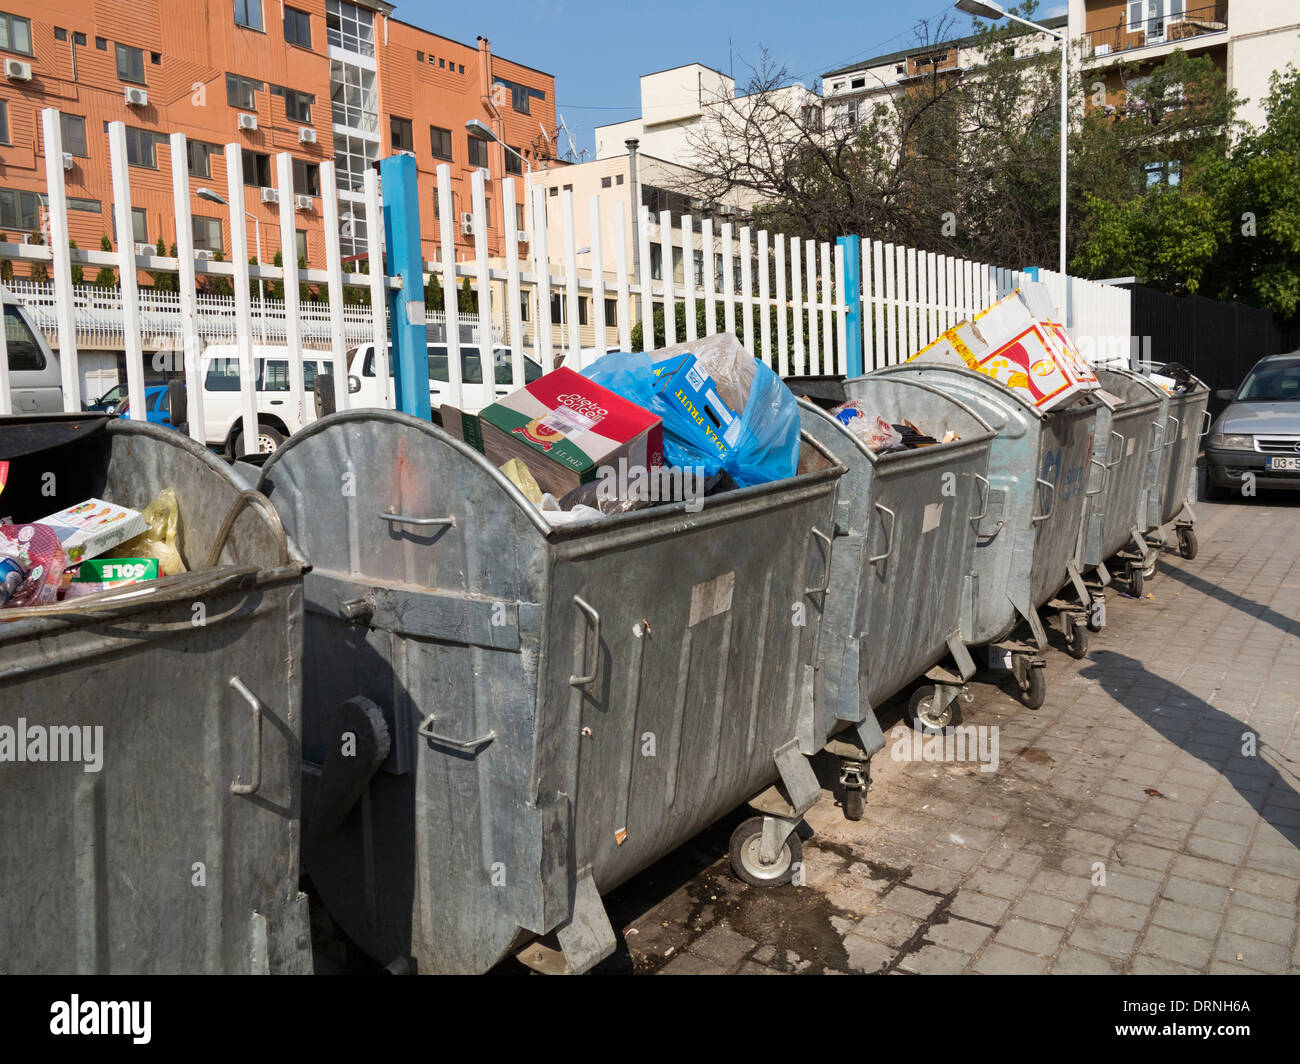 Rubbish bins, Europe - Stock Image